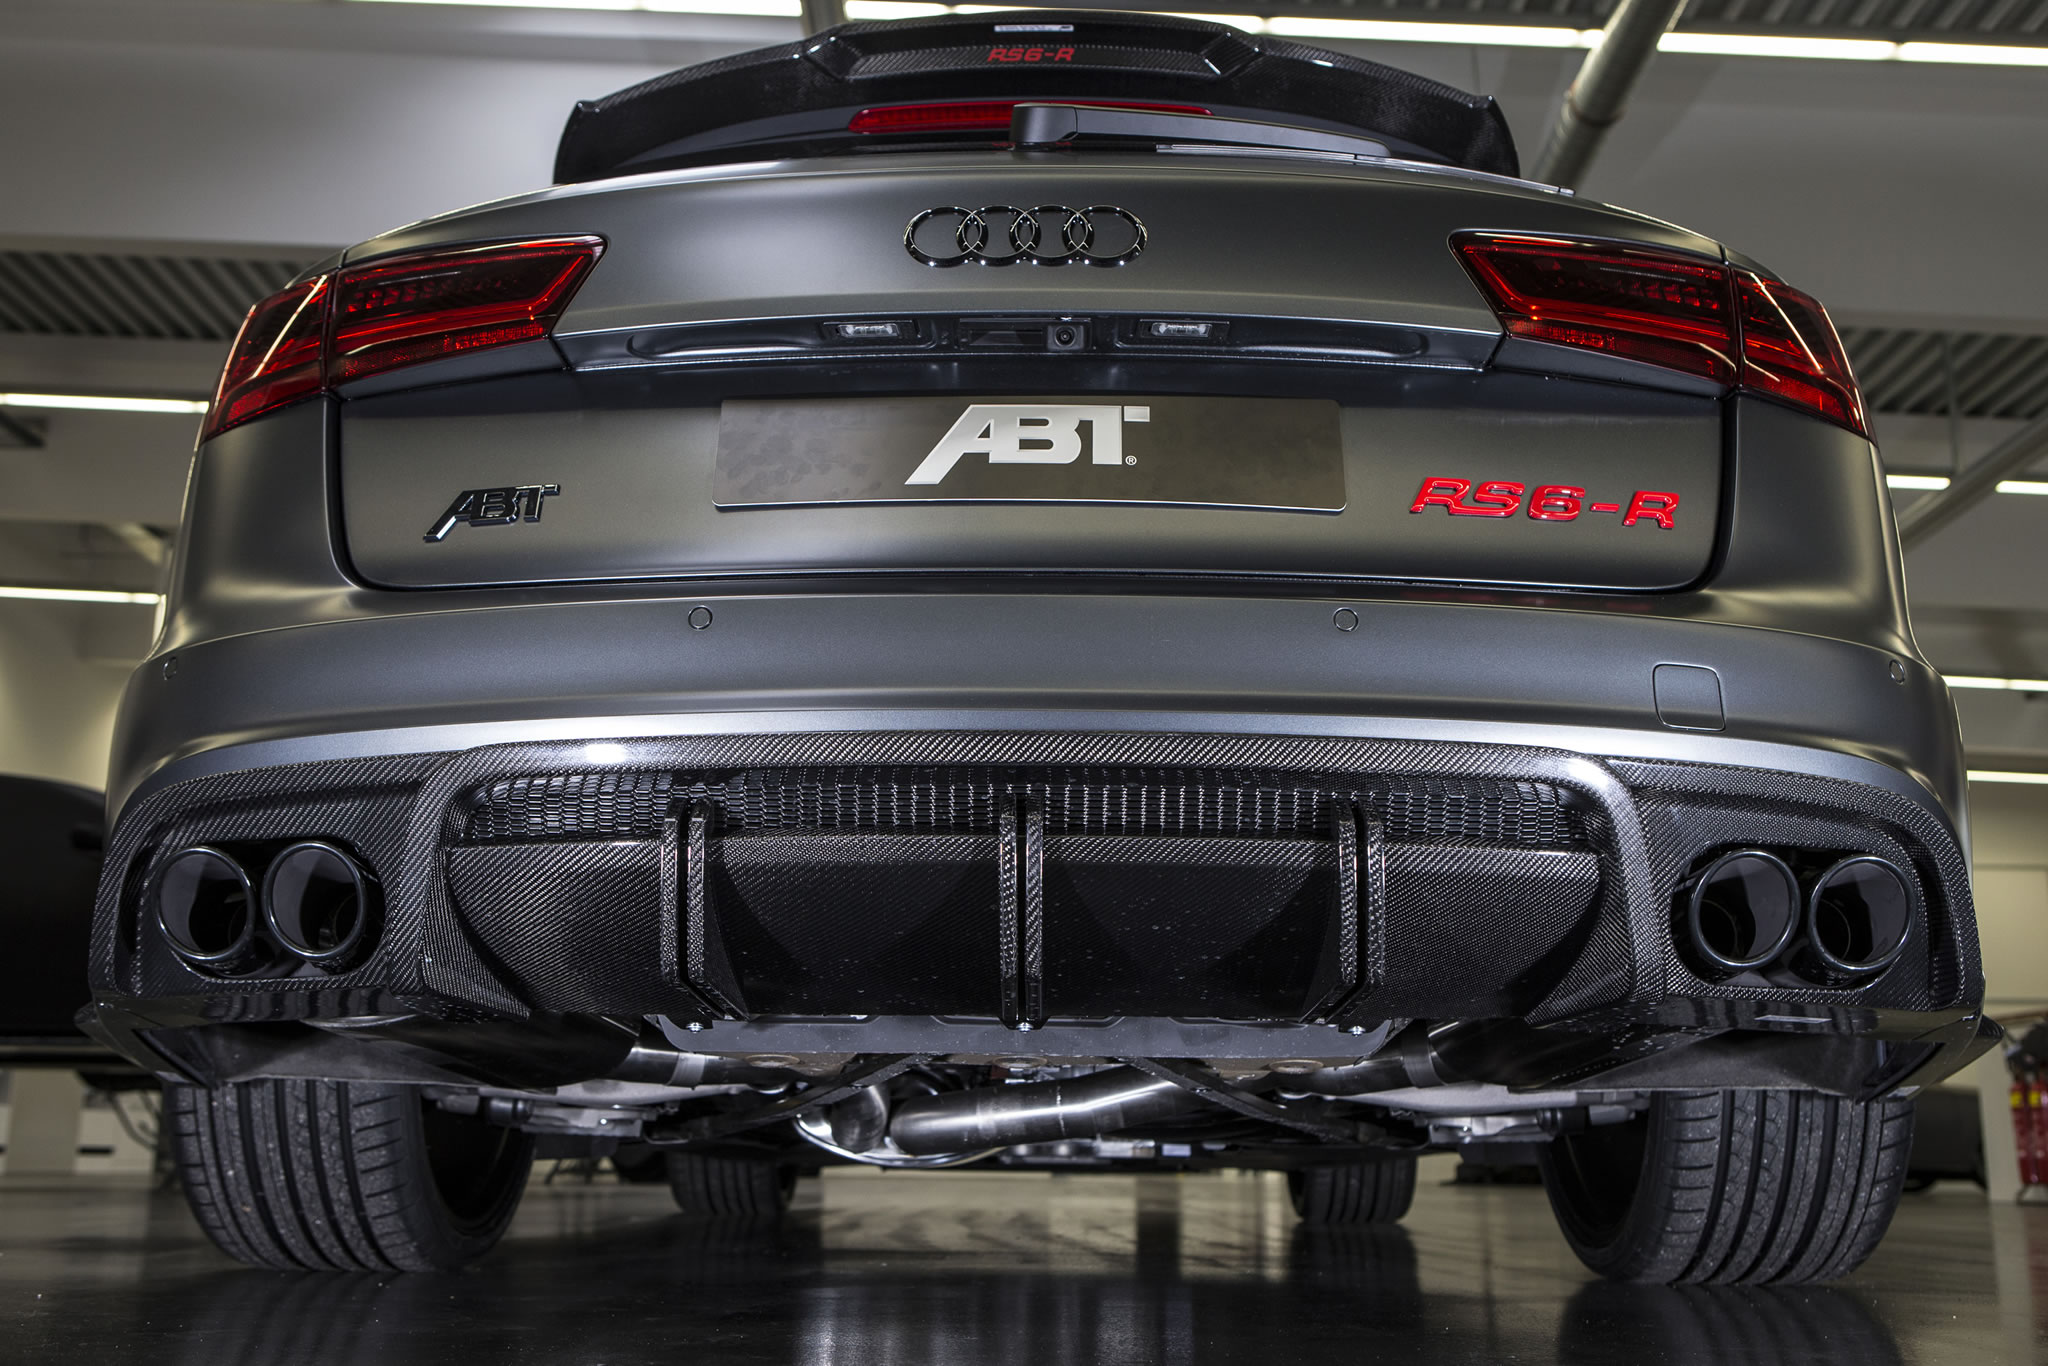 2016 audi rs6 r by abt rear photo daytona grey matt paint size 2048 x 1366 nr 3 9. Black Bedroom Furniture Sets. Home Design Ideas